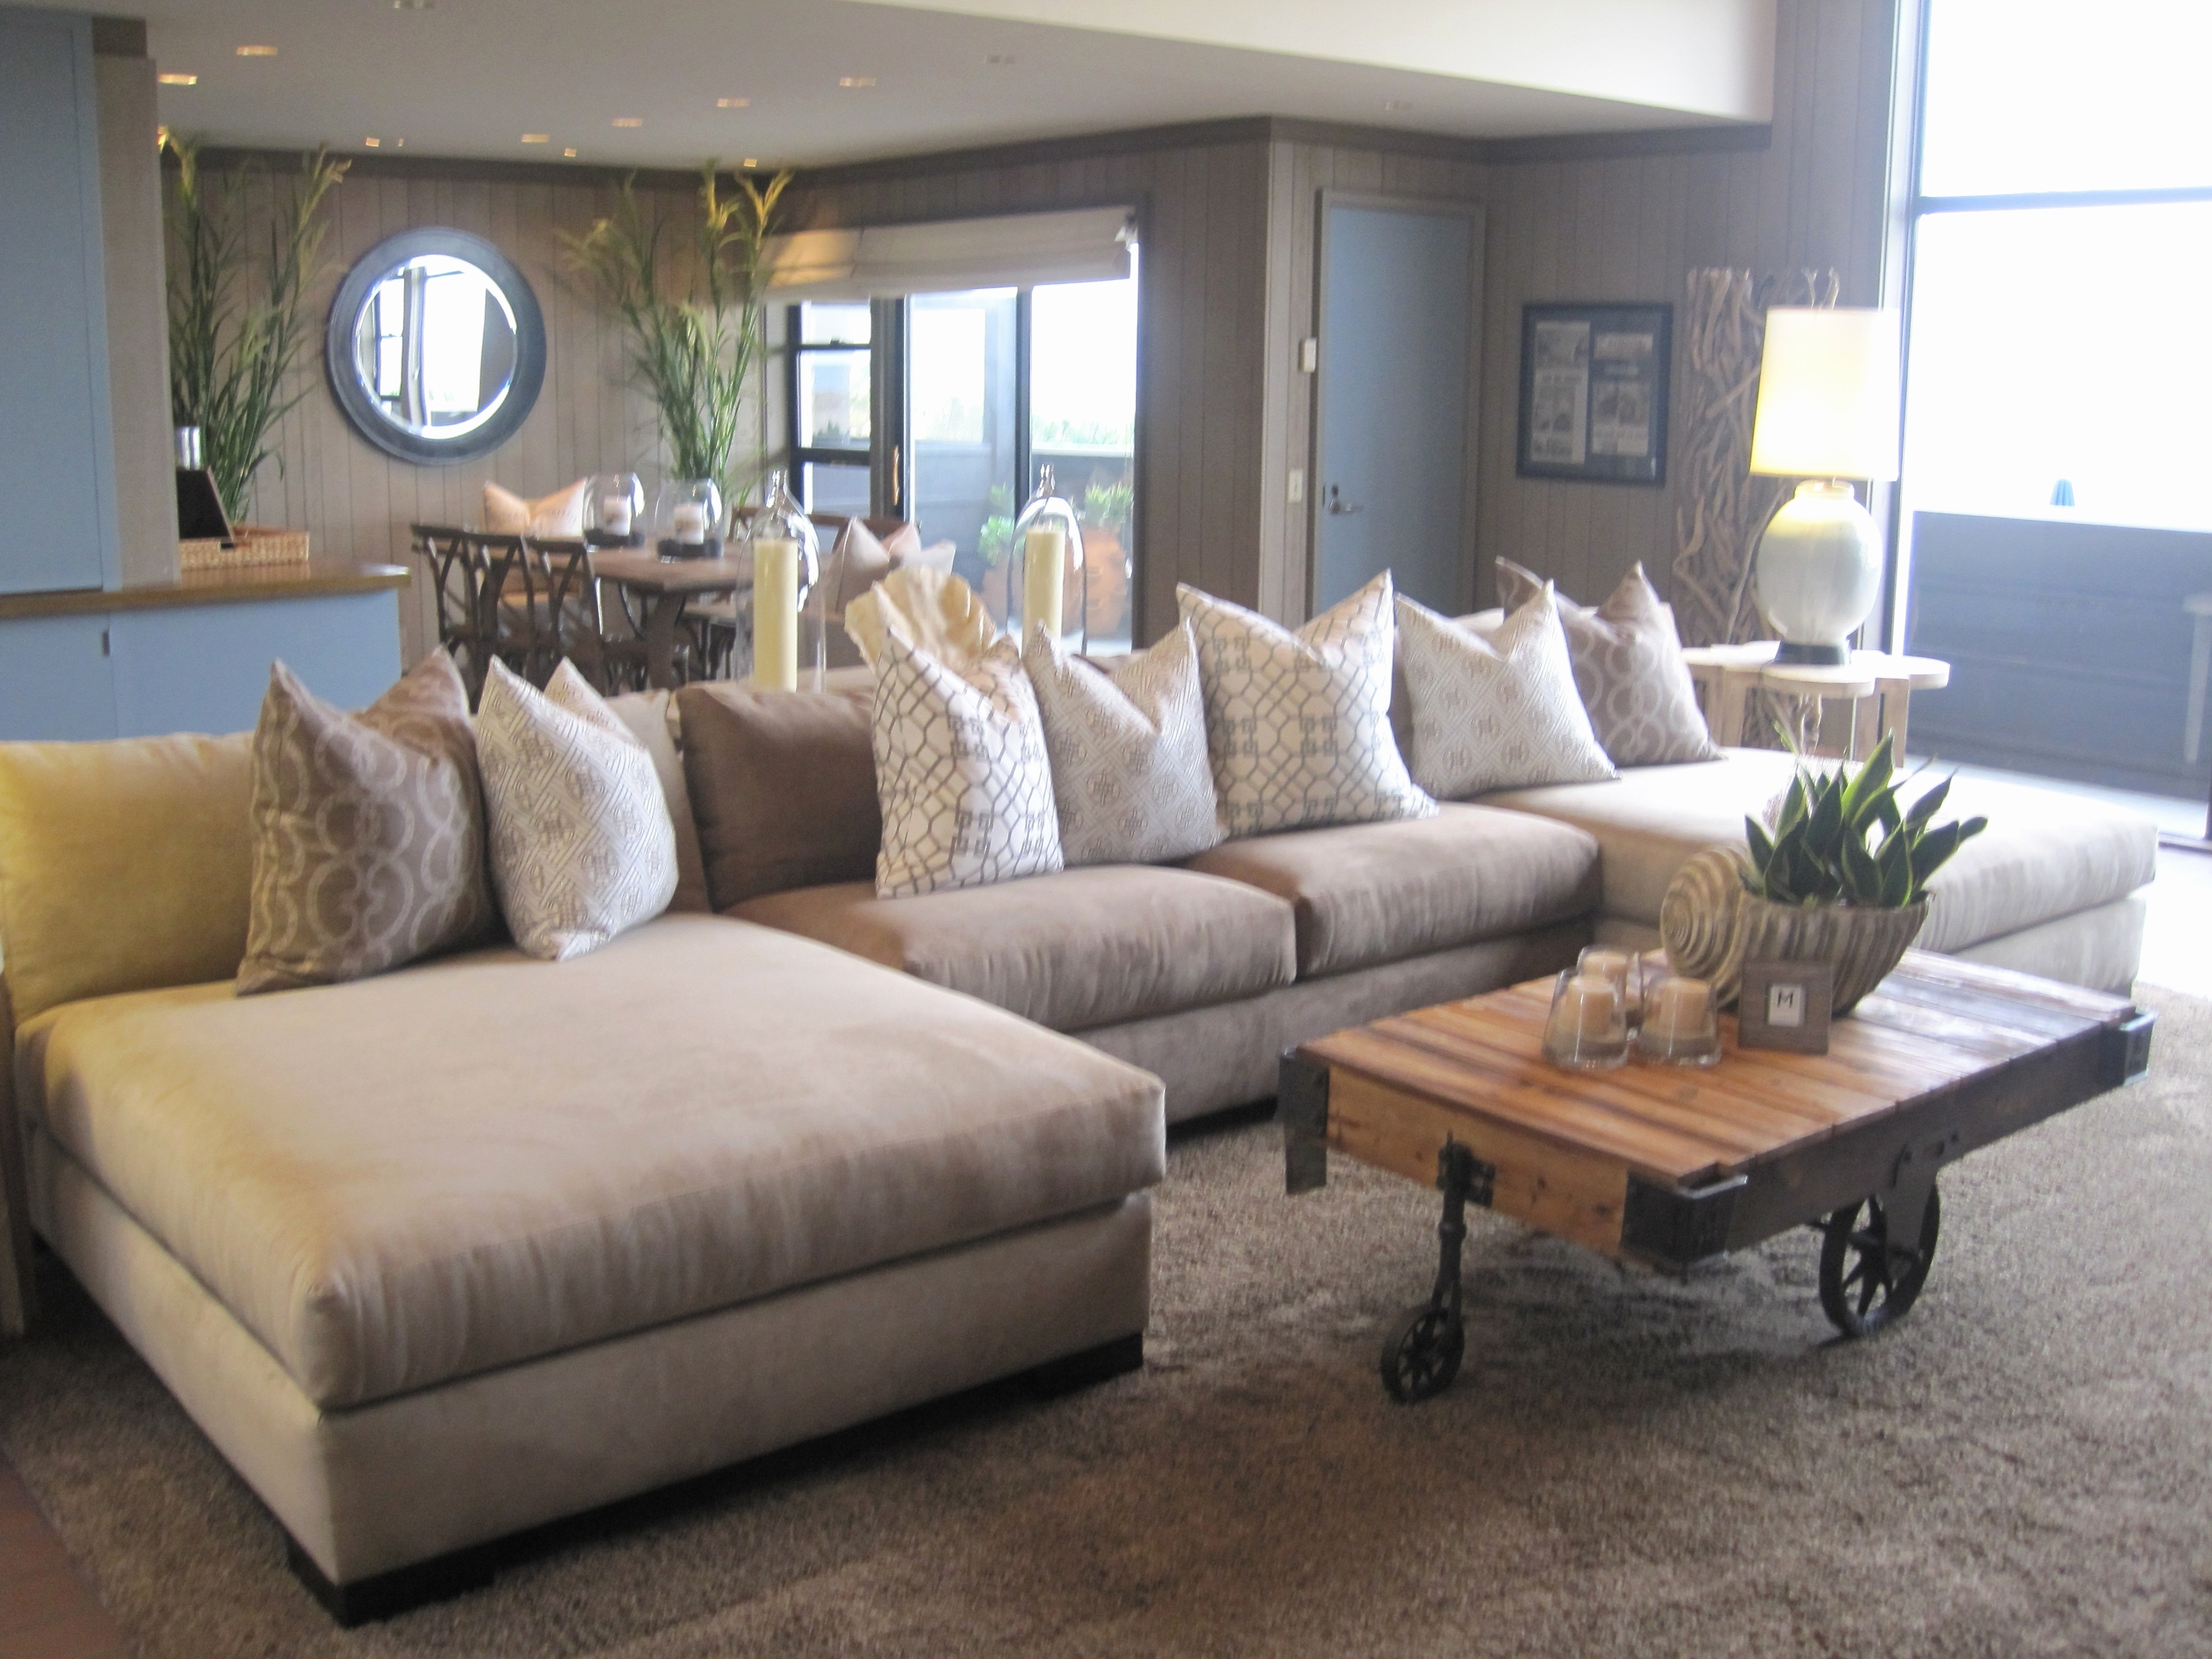 Popular Double Chaise Couches Regarding Elegant Large Chaise Lounge Sofa 2018 – Couches And Sofas Ideas (View 15 of 15)